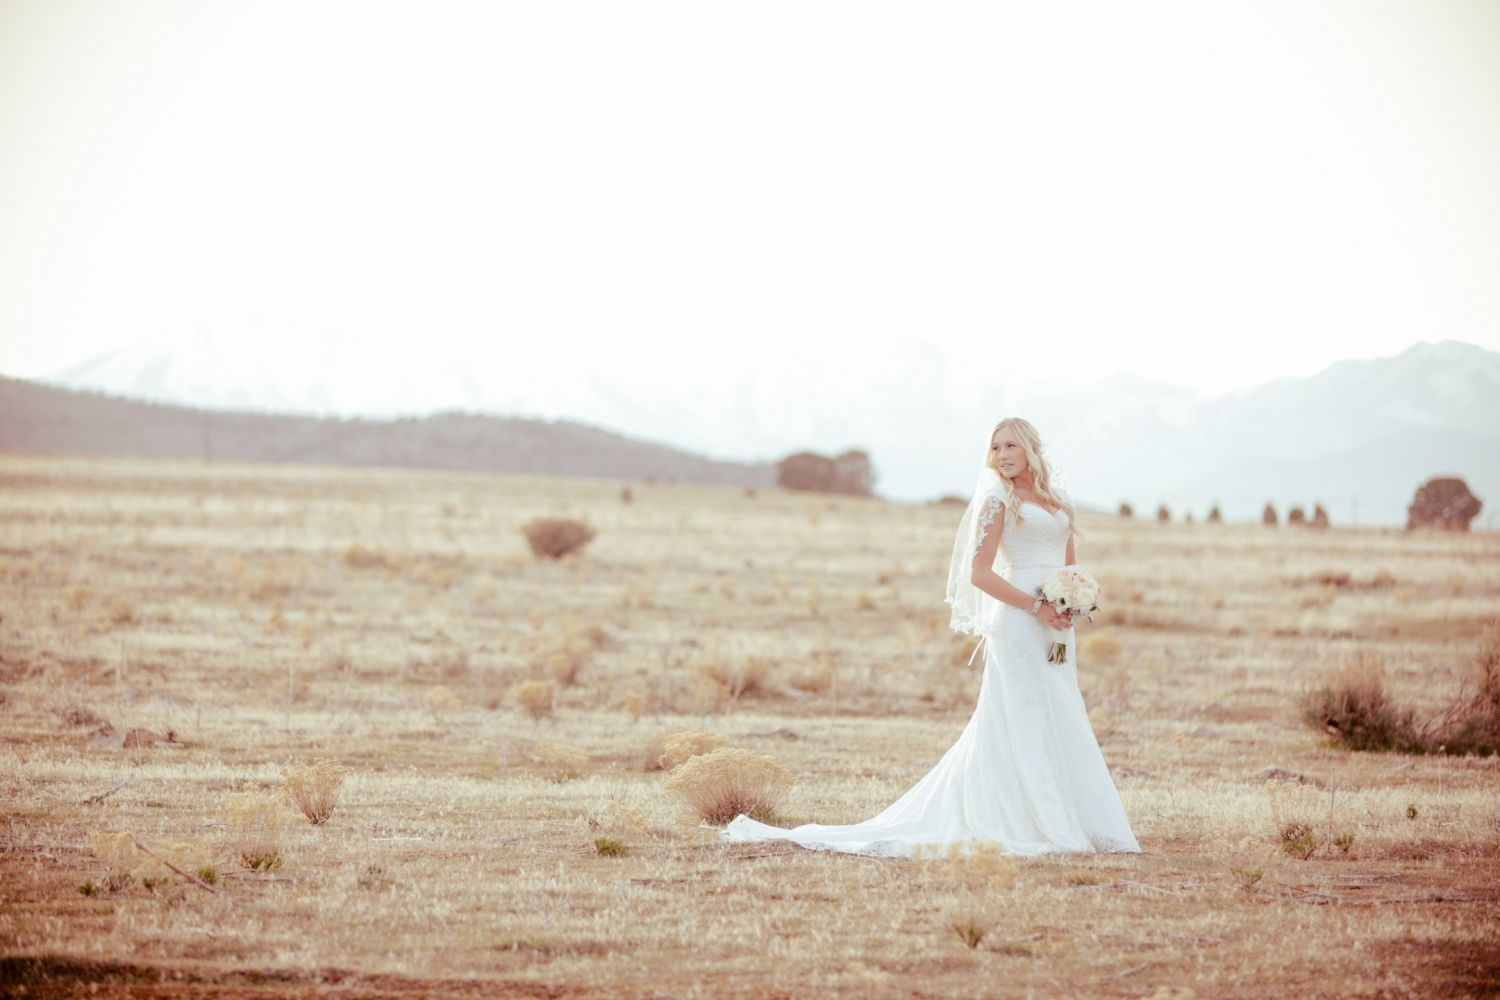 Sagebrush Bridal | ekphotovideo.com - Utah Wedding Photographers and Videographers #ekstudios #utahweddingphotographer #bride #groom #bridal #wedding #videography #weddingday #ldsweddingphotographer #weddinginspiration #weddinginspo #utahphotographer #destinationwedding #utahbride #utah #weddingphotographer #ldswedding #modestweddingdress